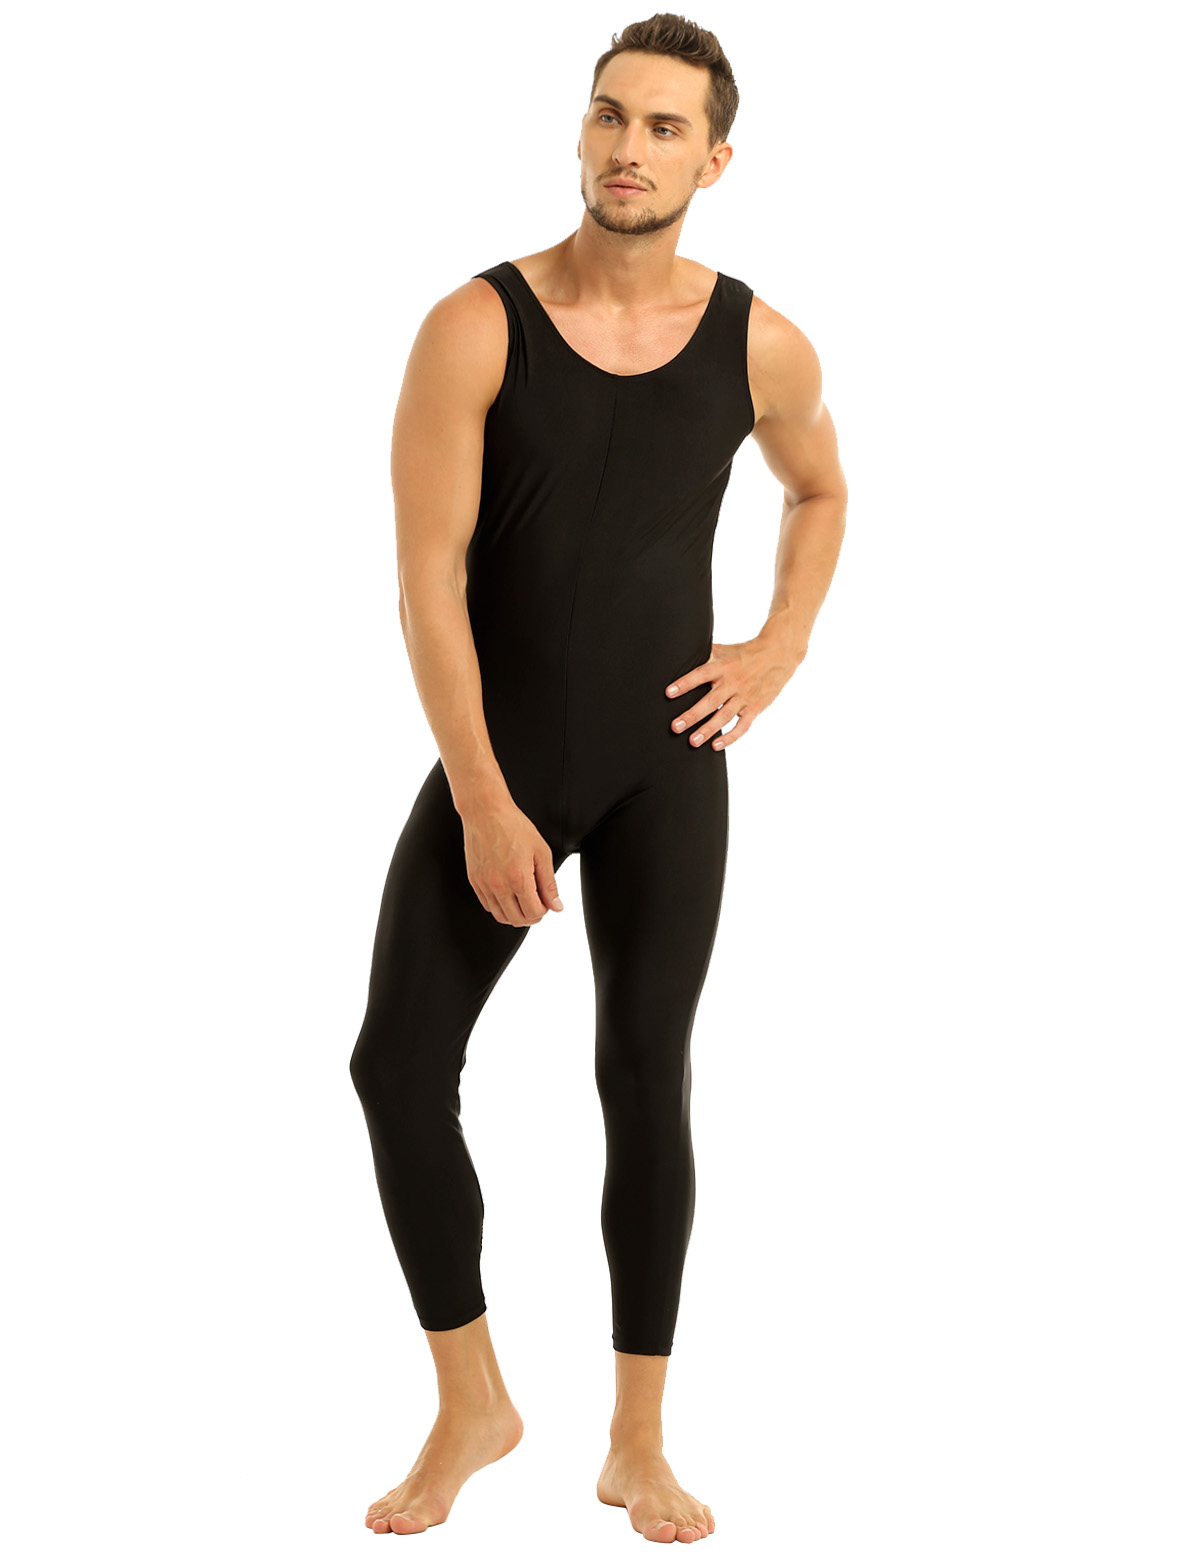 Men Sleeveless Leotard Bodysuit Lycra Tights Leggings for Ballet Dance Vest Teddy Sports Unitard Catsuit Male Dancewear Jumpsuit 31